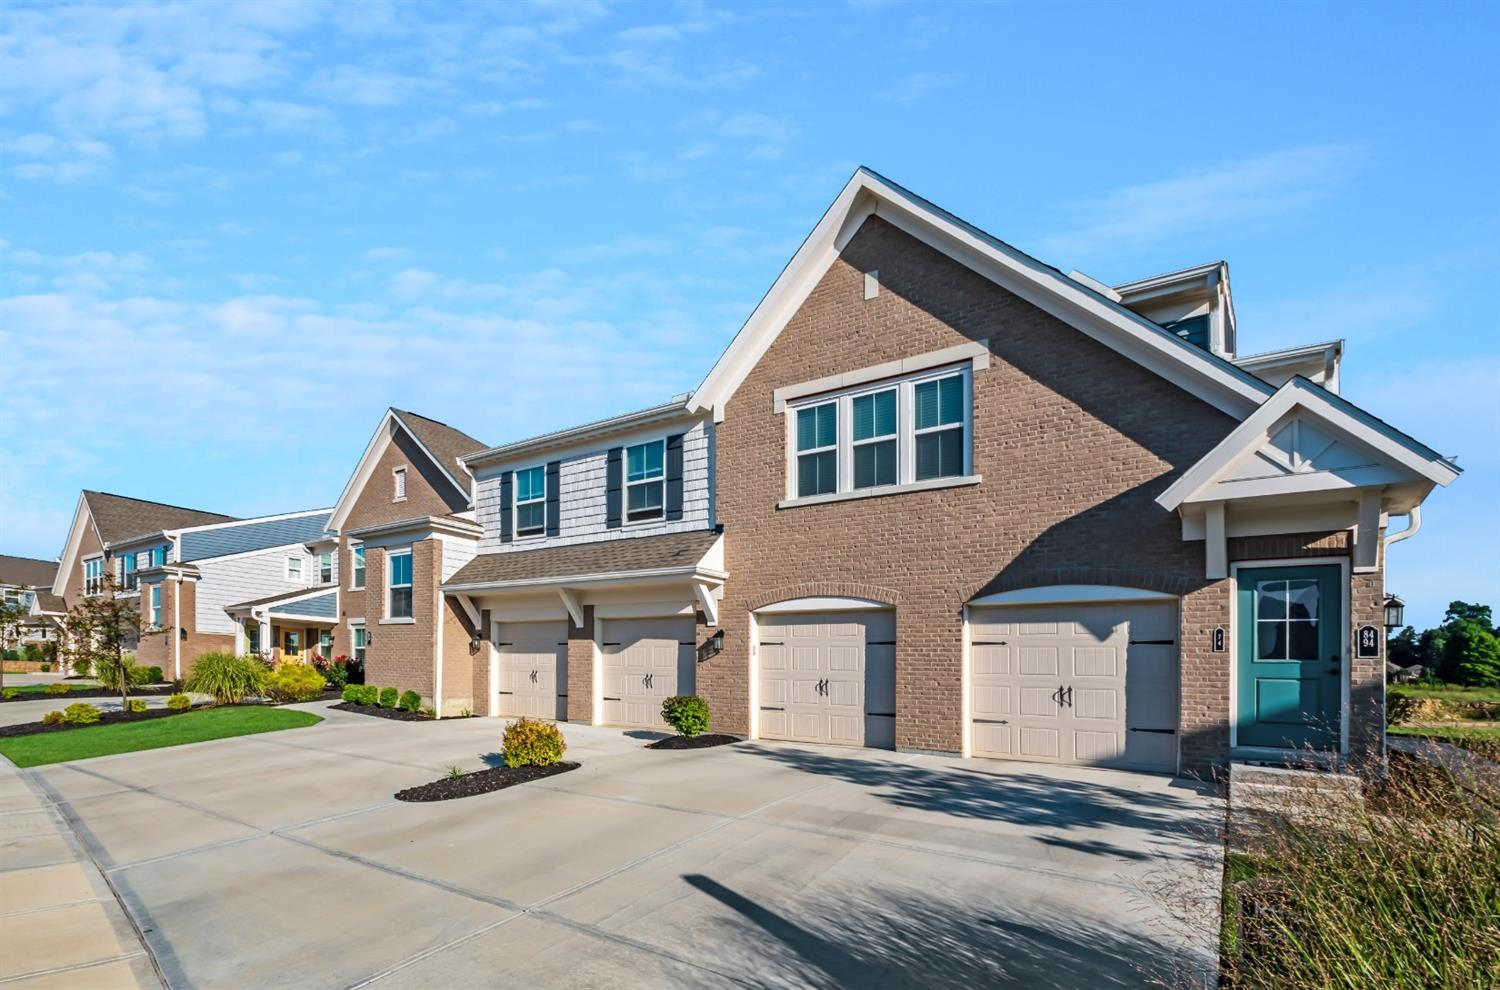 Property for sale at 36 Waterlily Drive Unit: 20302, Springboro,  Ohio 45066